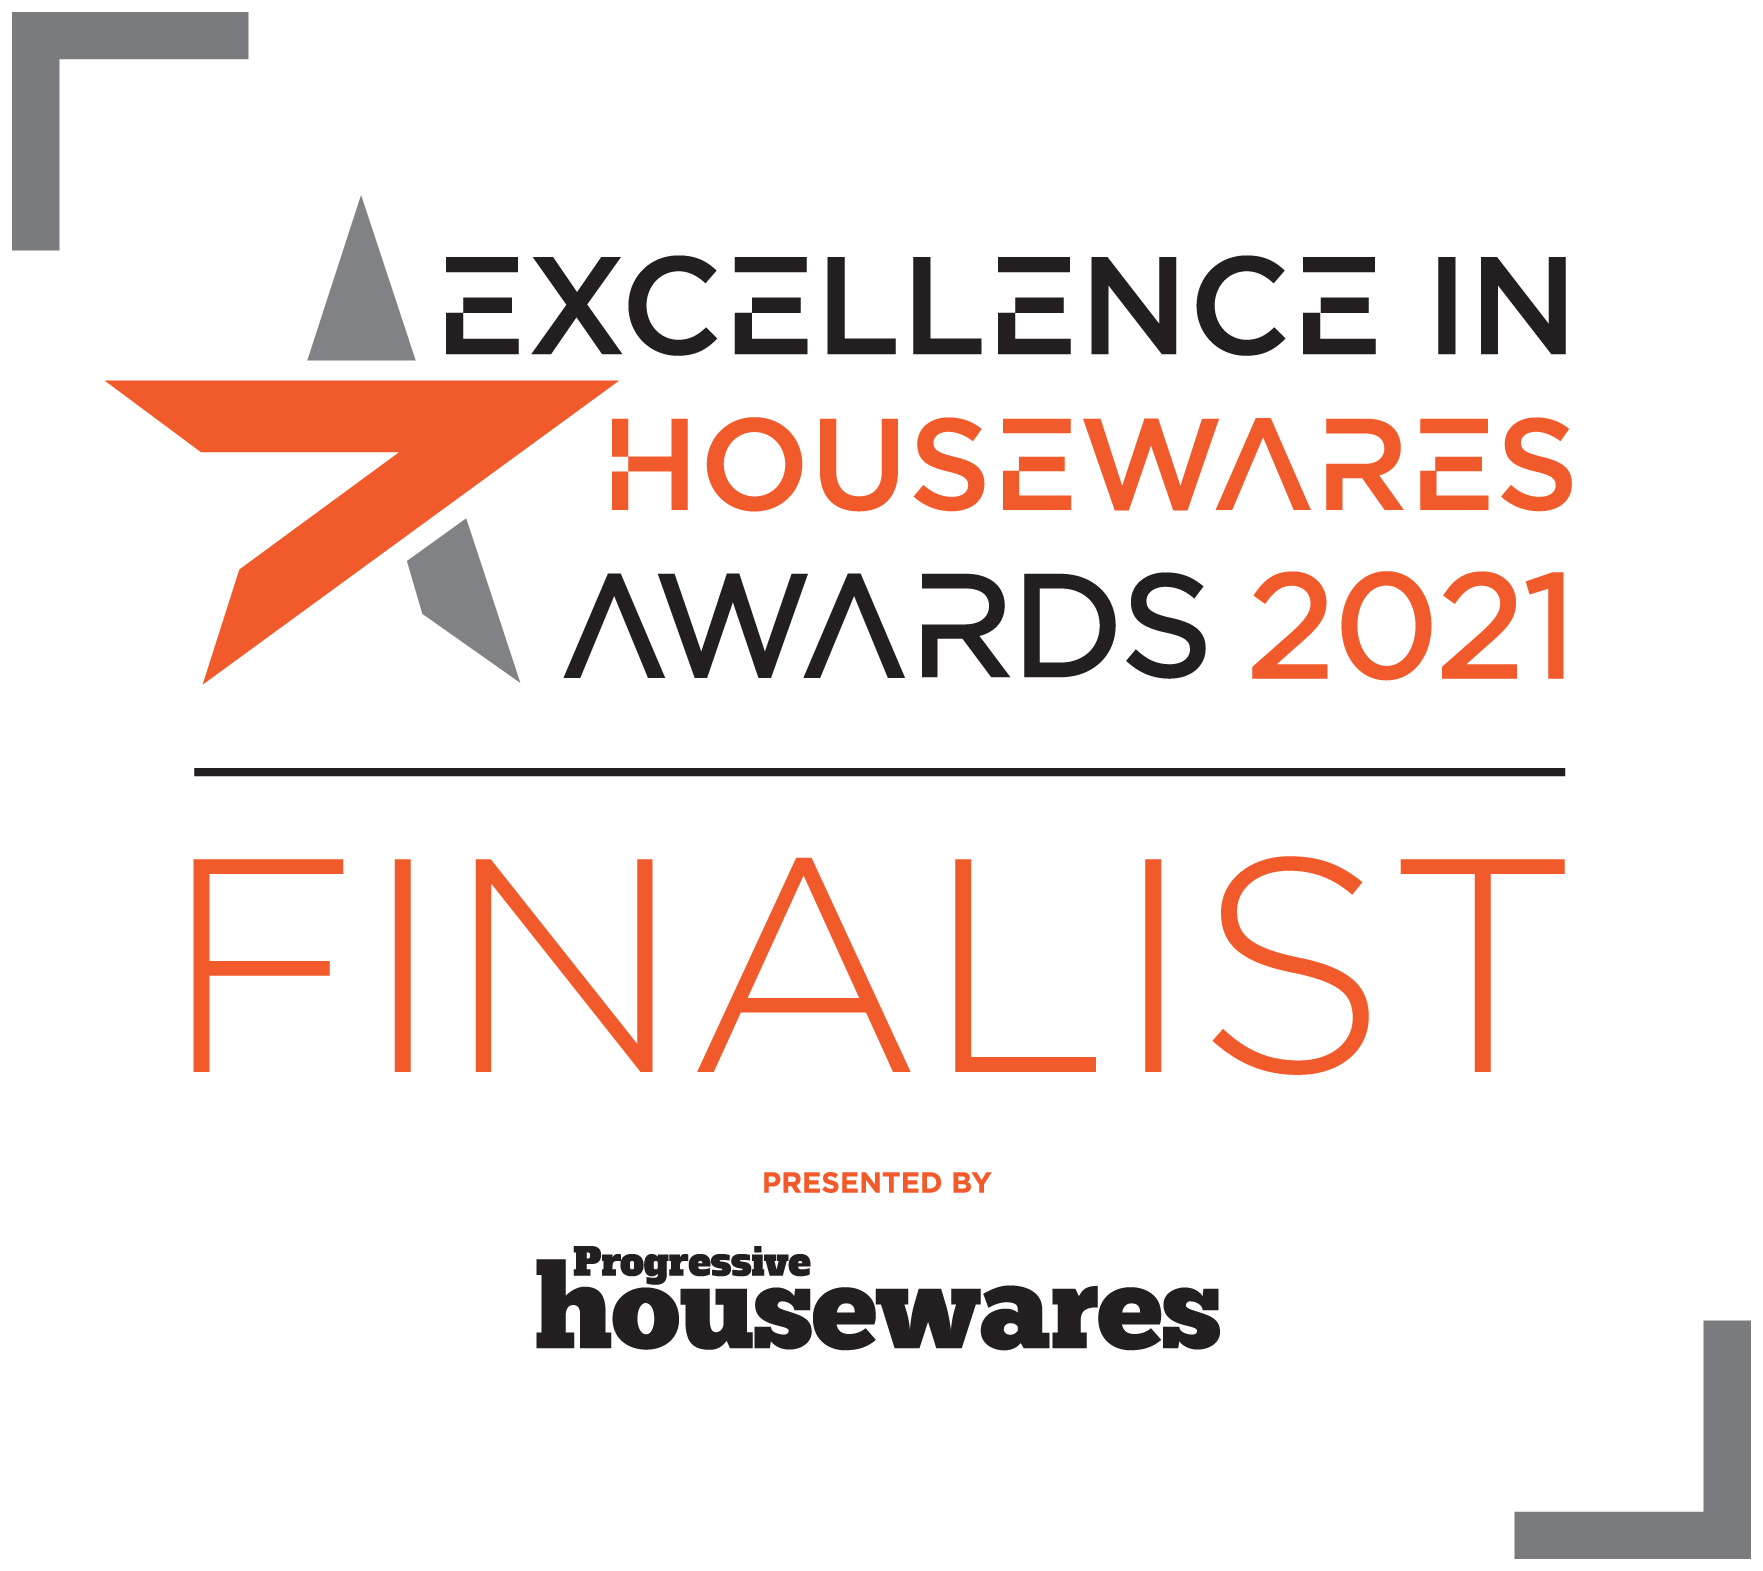 Leekes Named Finalist for the Excellence In Housewares Awards 2021